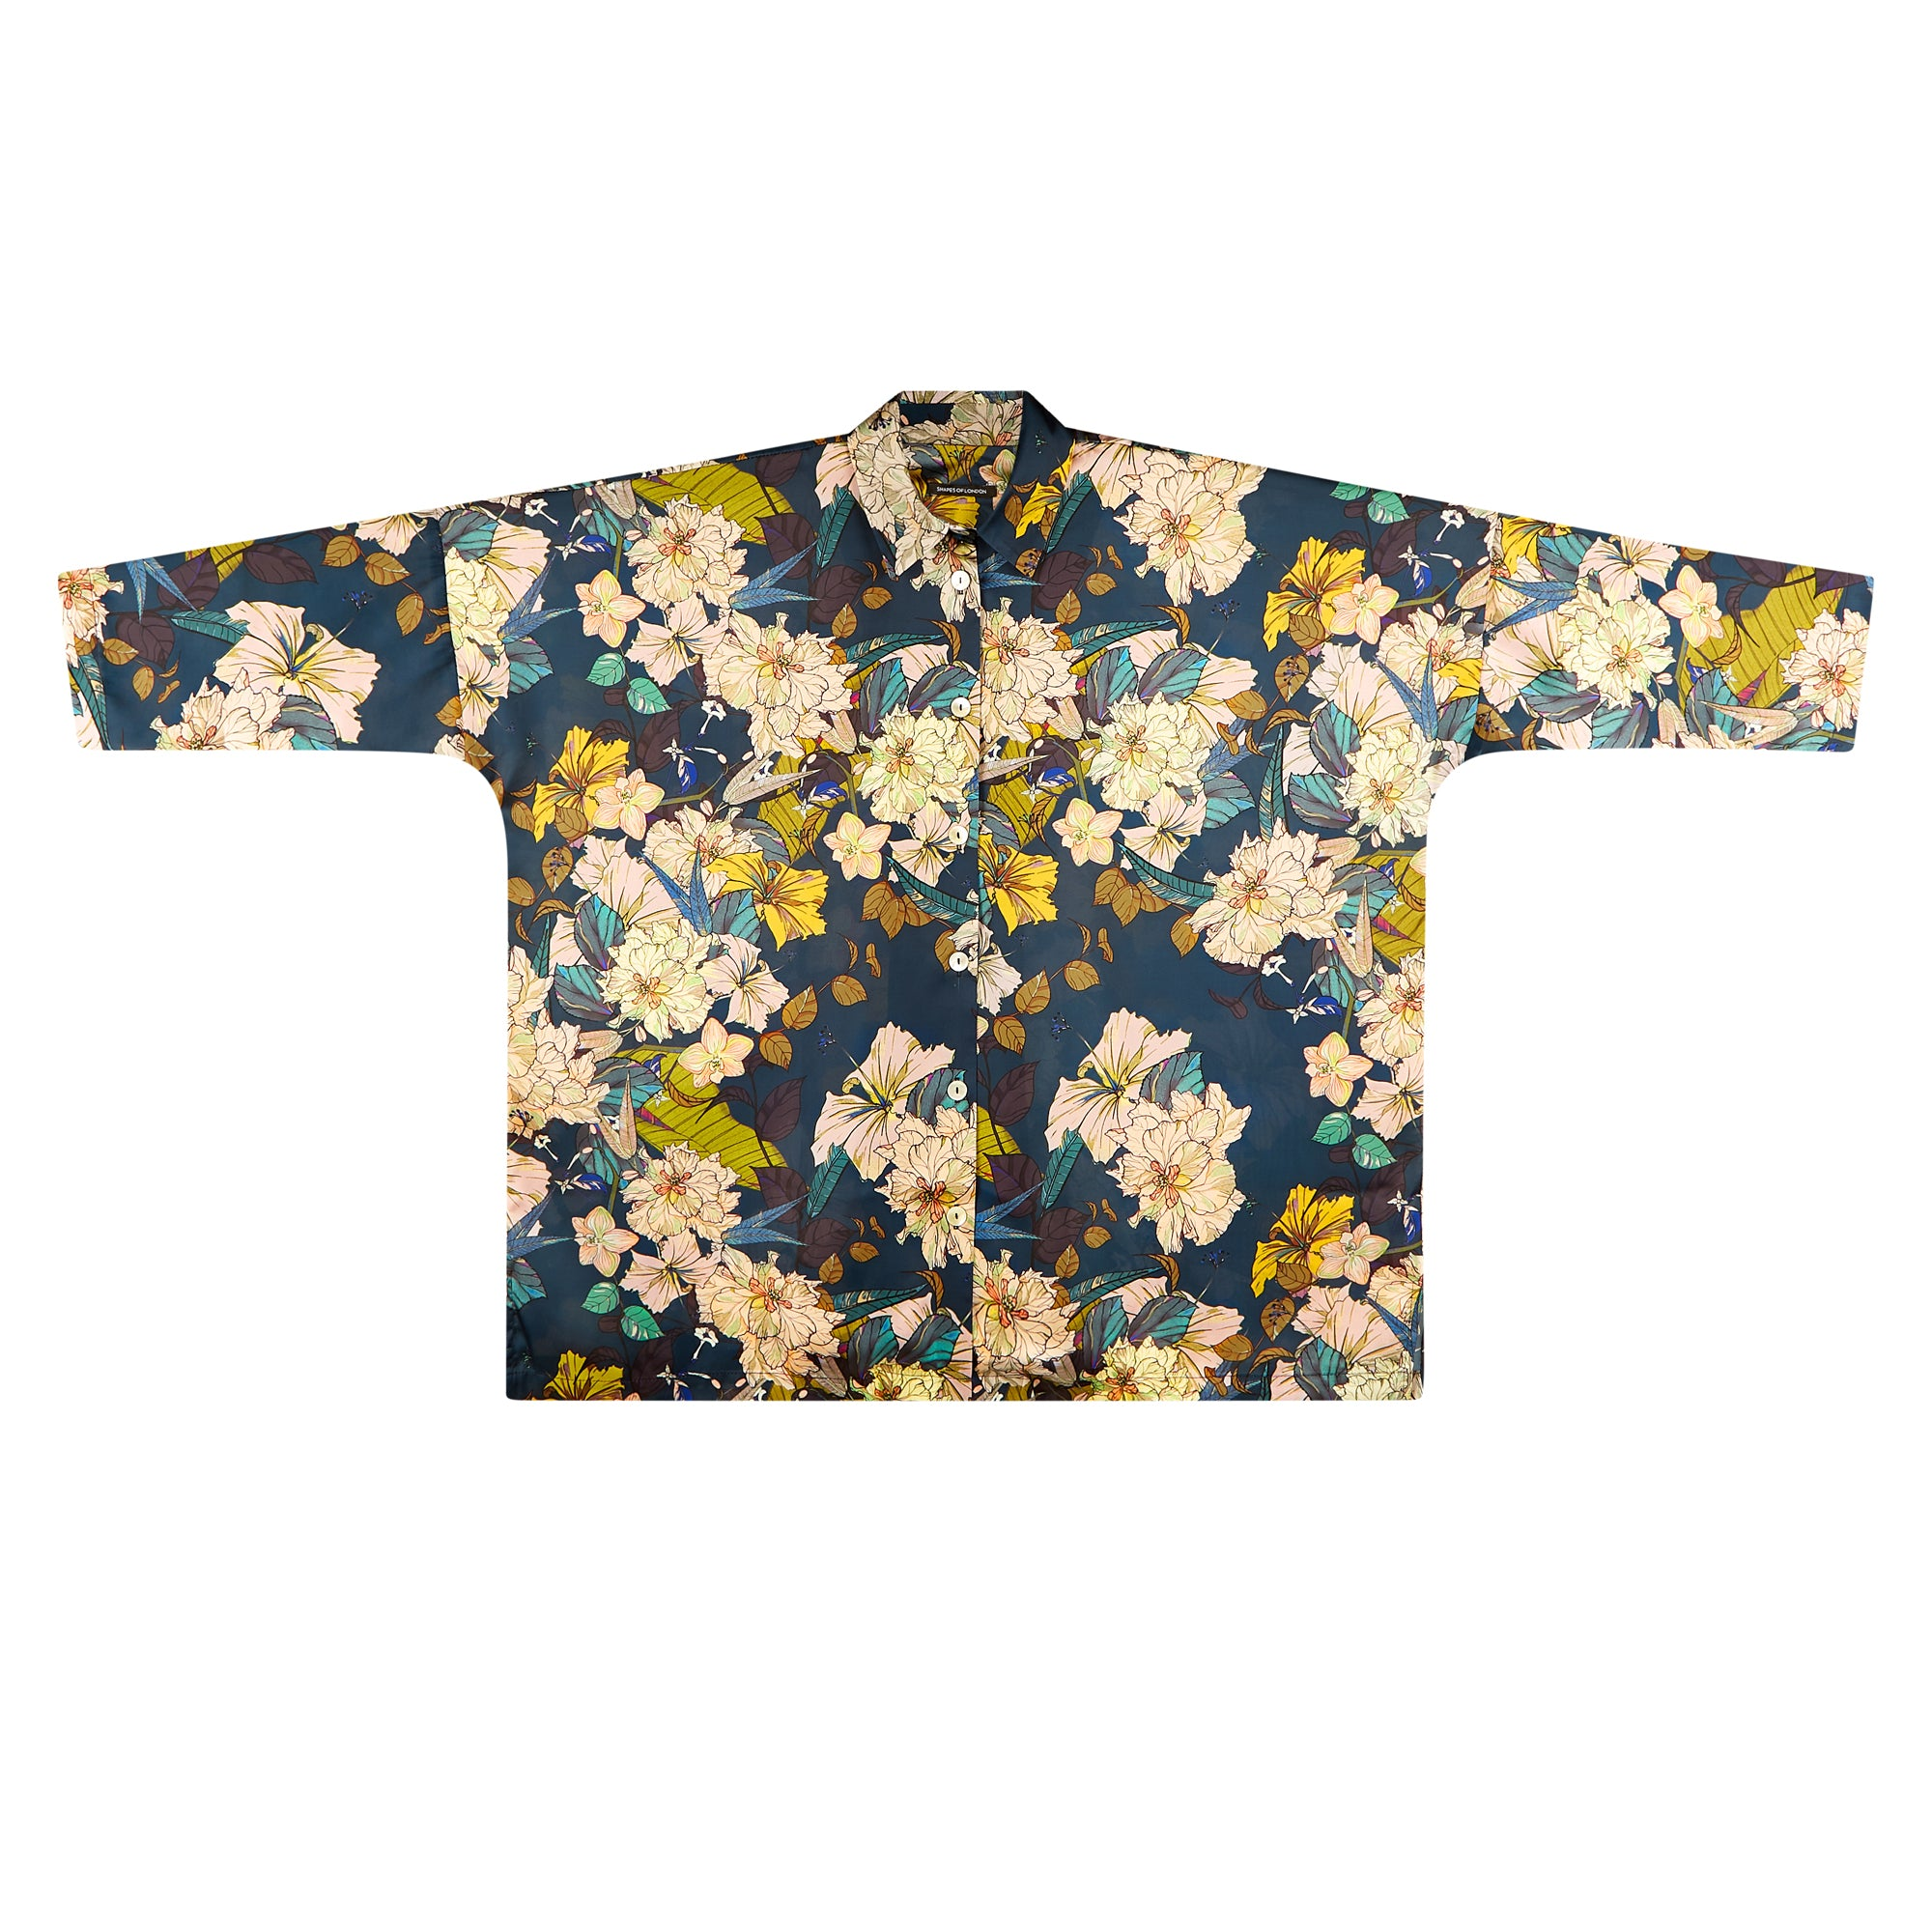 SILKY ITALIAN PRINT LONGER OVERSIZED SHIRT | FLORAL HIBISCUS ON NAVY